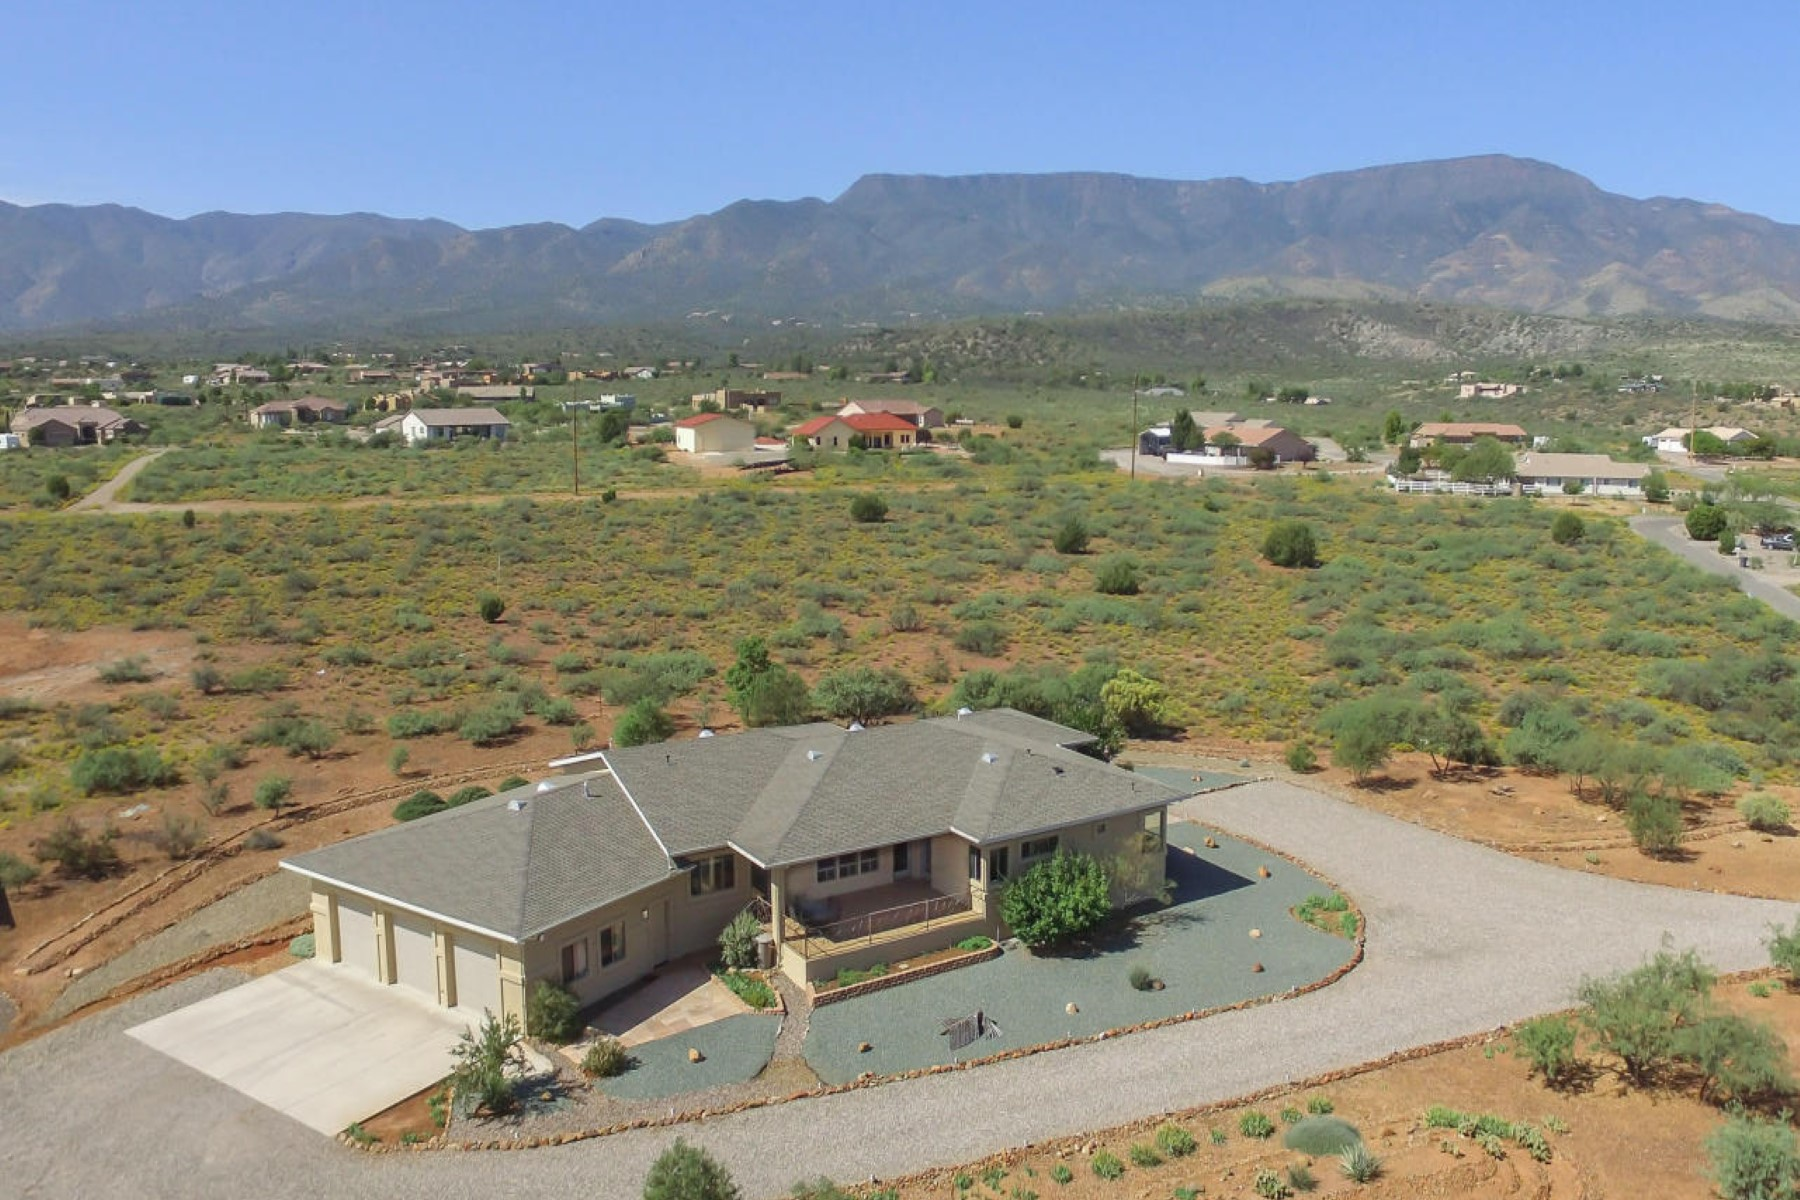 Single Family Home for Sale at Contemporary ranch home nestled in the Mingus Foothills 1155 E High Desert Lane Cottonwood, Arizona, 86326 United States